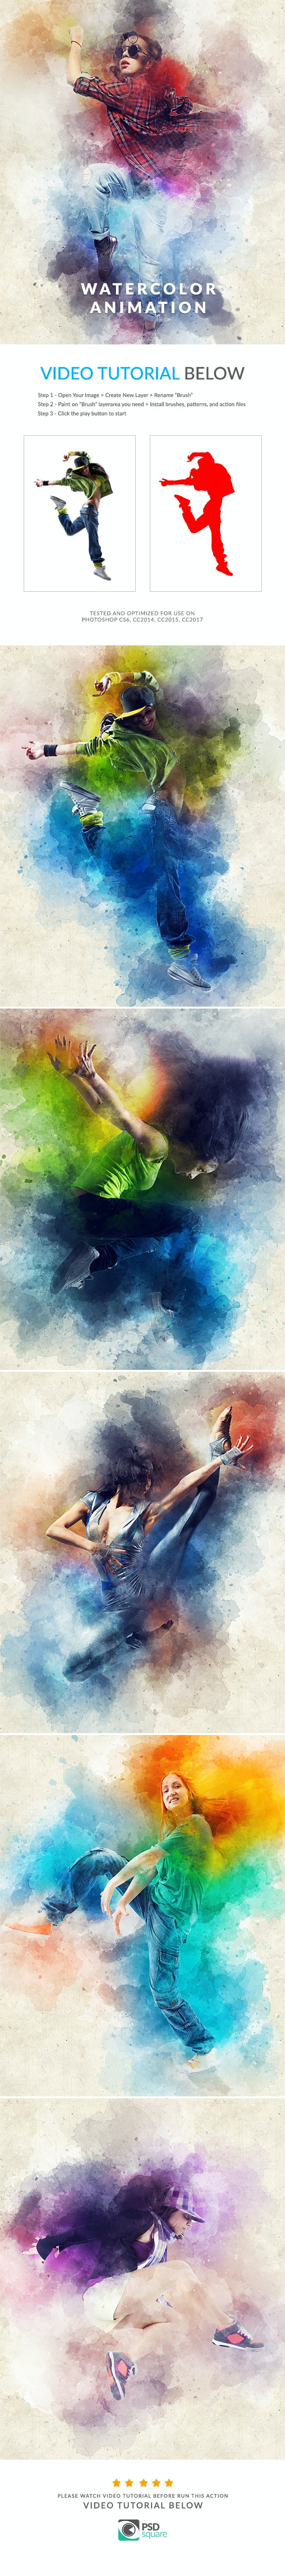 Watercolor Animation Photoshop Action - Photo Effects Actions